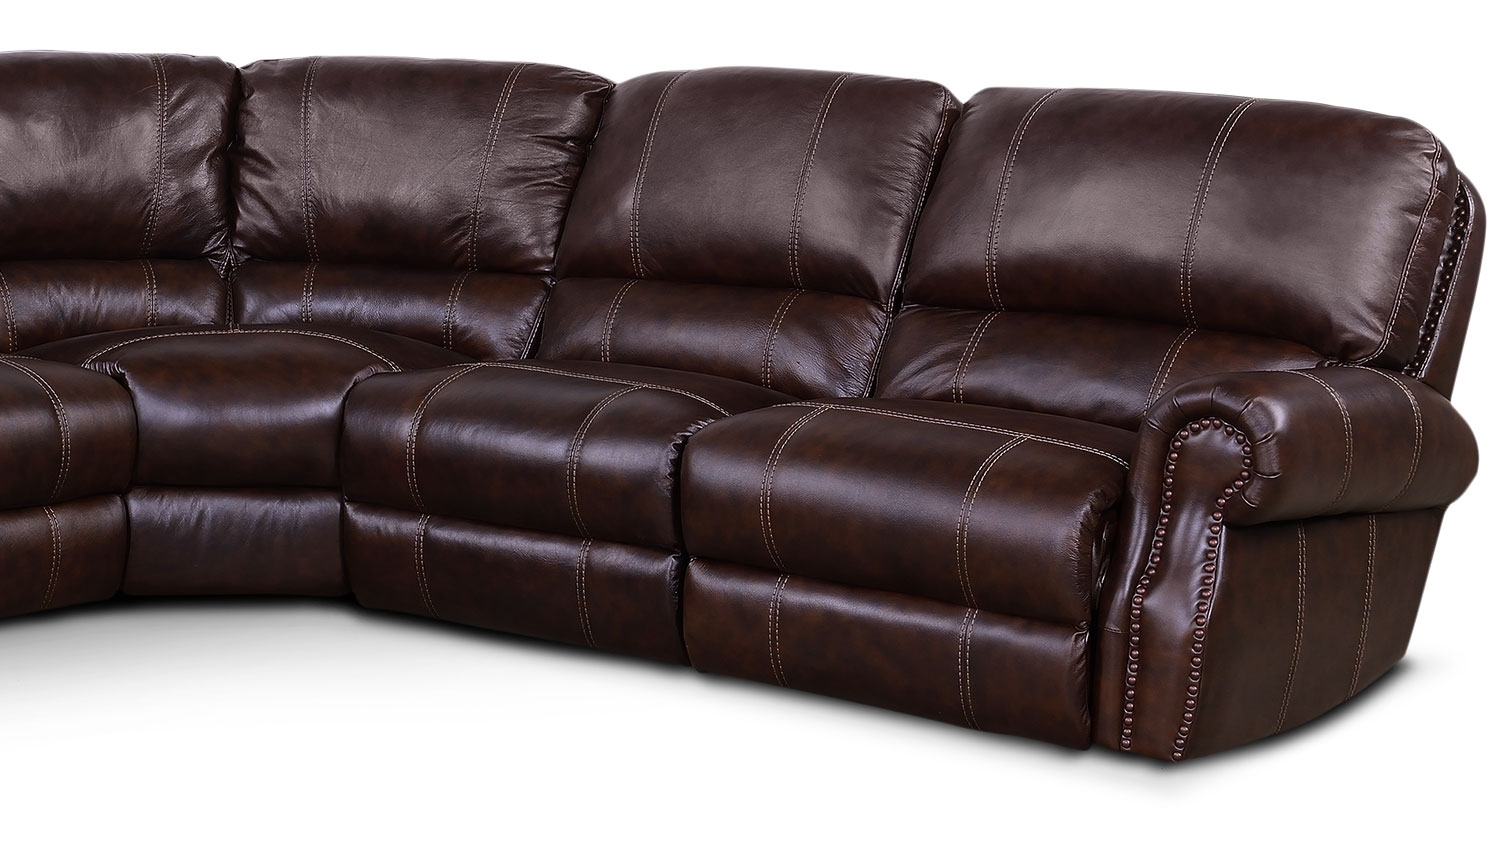 Dartmouth 6 Piece Power Reclining Sectional W/ Left Facing Chaise For Norfolk Chocolate 6 Piece Sectionals (View 5 of 25)